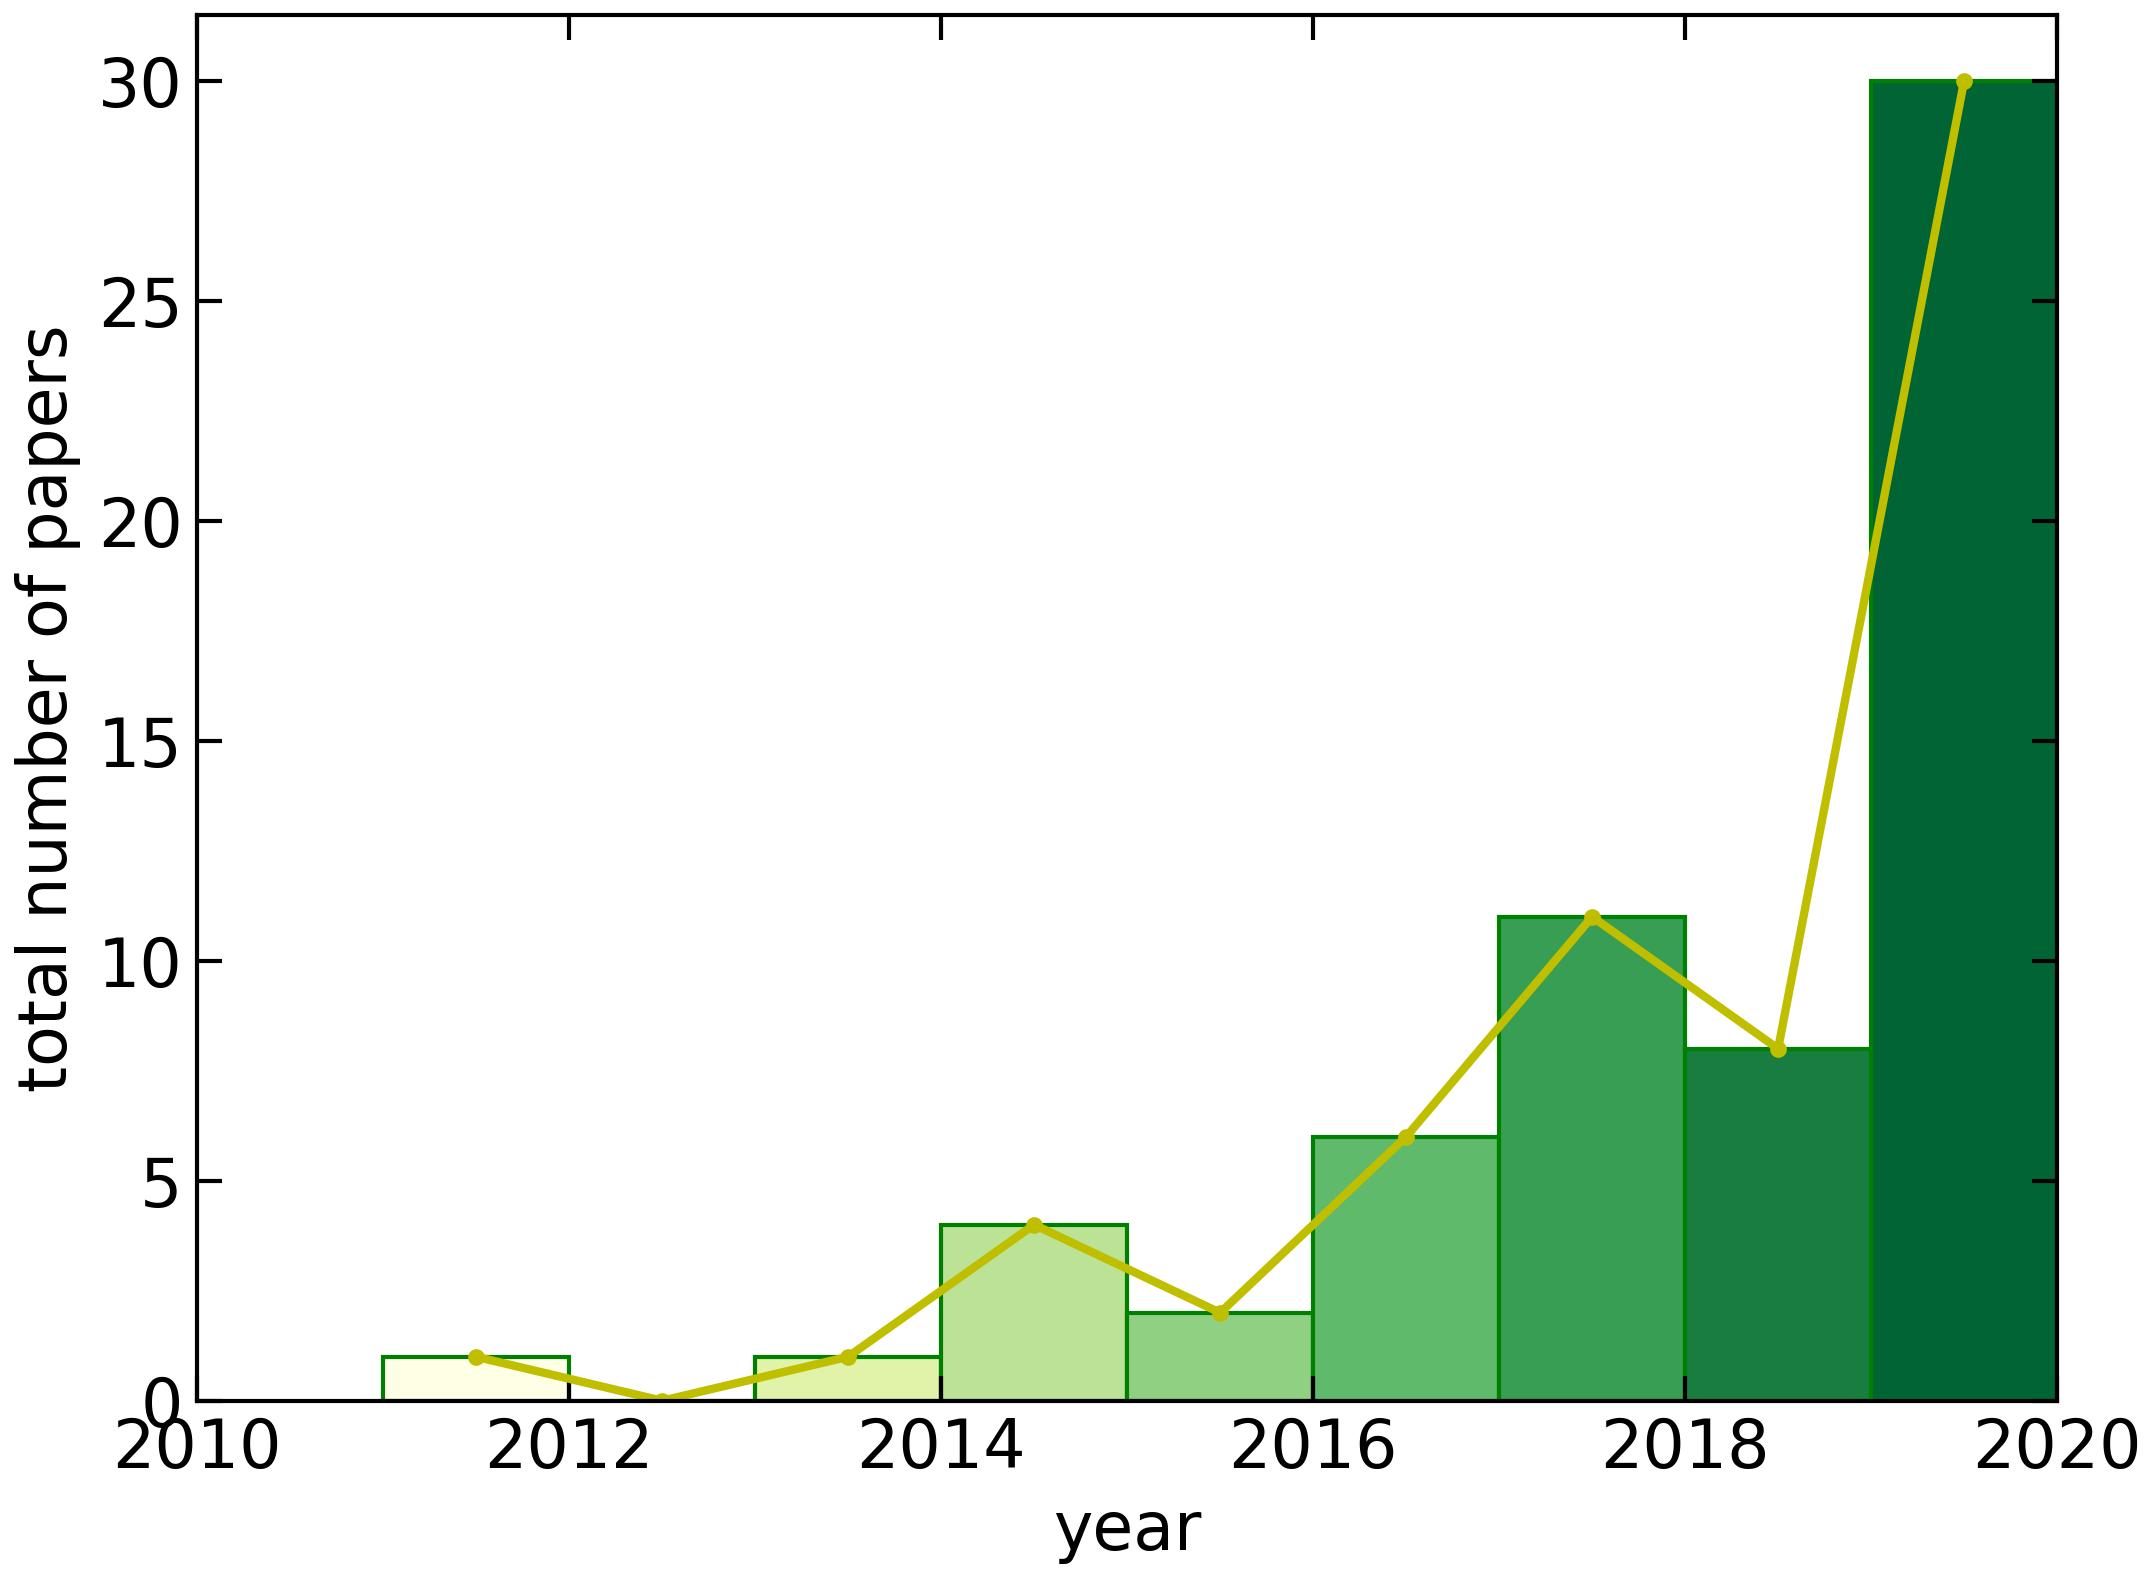 Fig. 2. Number of papers in [1] published for the last 10 years, from 2010 to 2020.